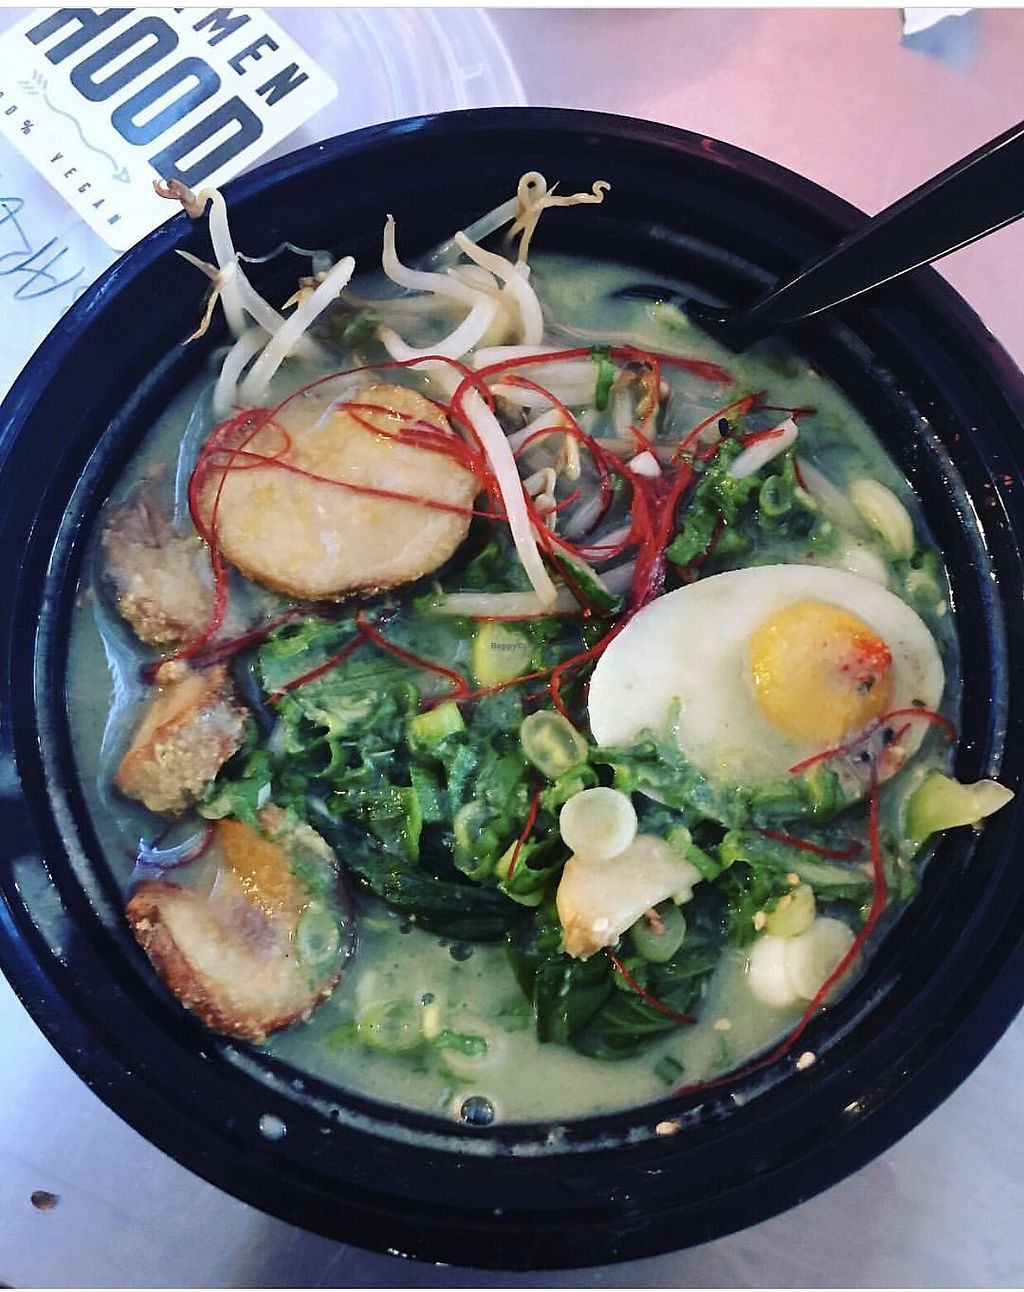 """Photo of Ramen Hood  by <a href=""""/members/profile/SoWo1999"""">SoWo1999</a> <br/>Garlic Noodles <br/> January 14, 2018  - <a href='/contact/abuse/image/65585/346686'>Report</a>"""